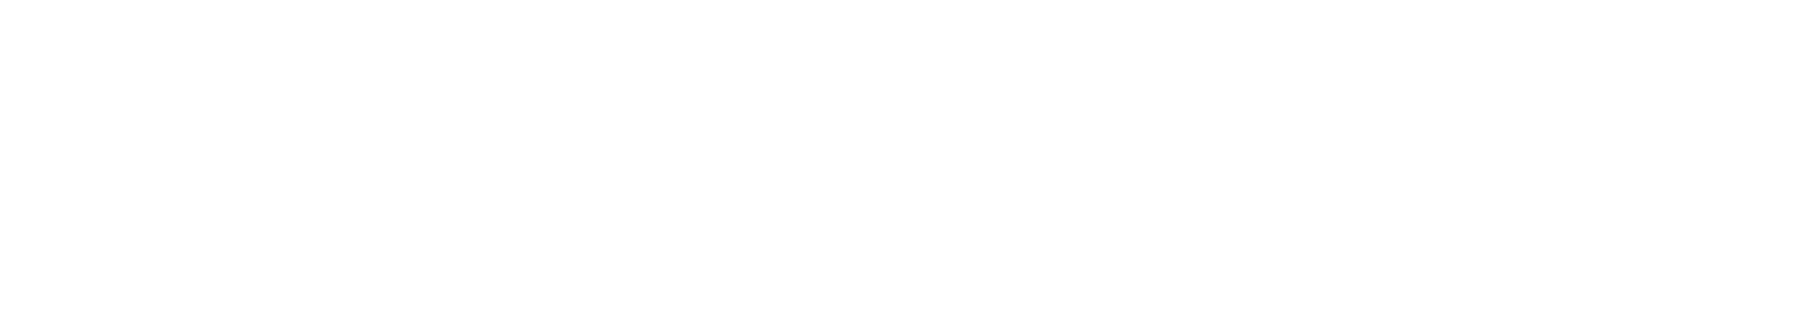 NAST logo - National Association of State Treasurers